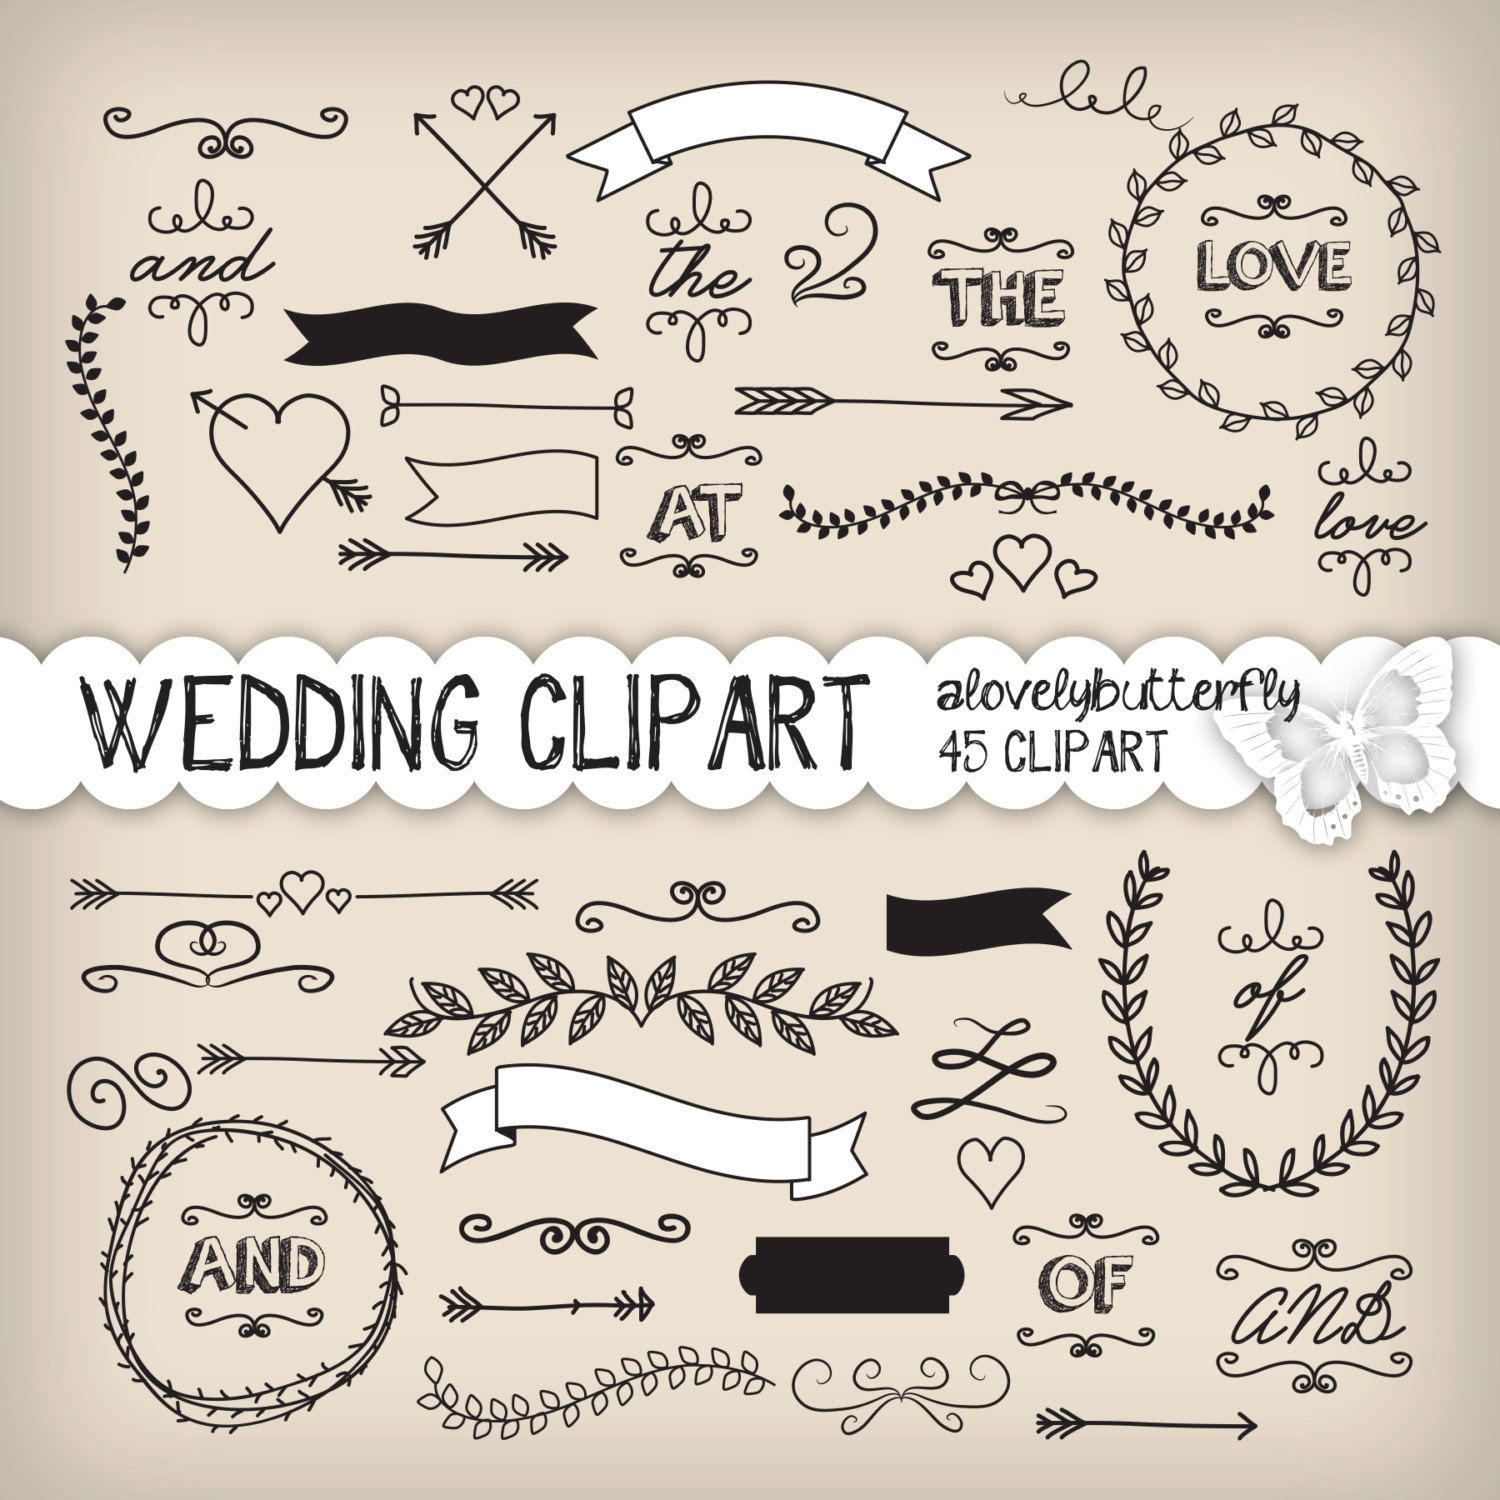 Wedding laurel clipart wedding invitation by alovelybutterfly ...